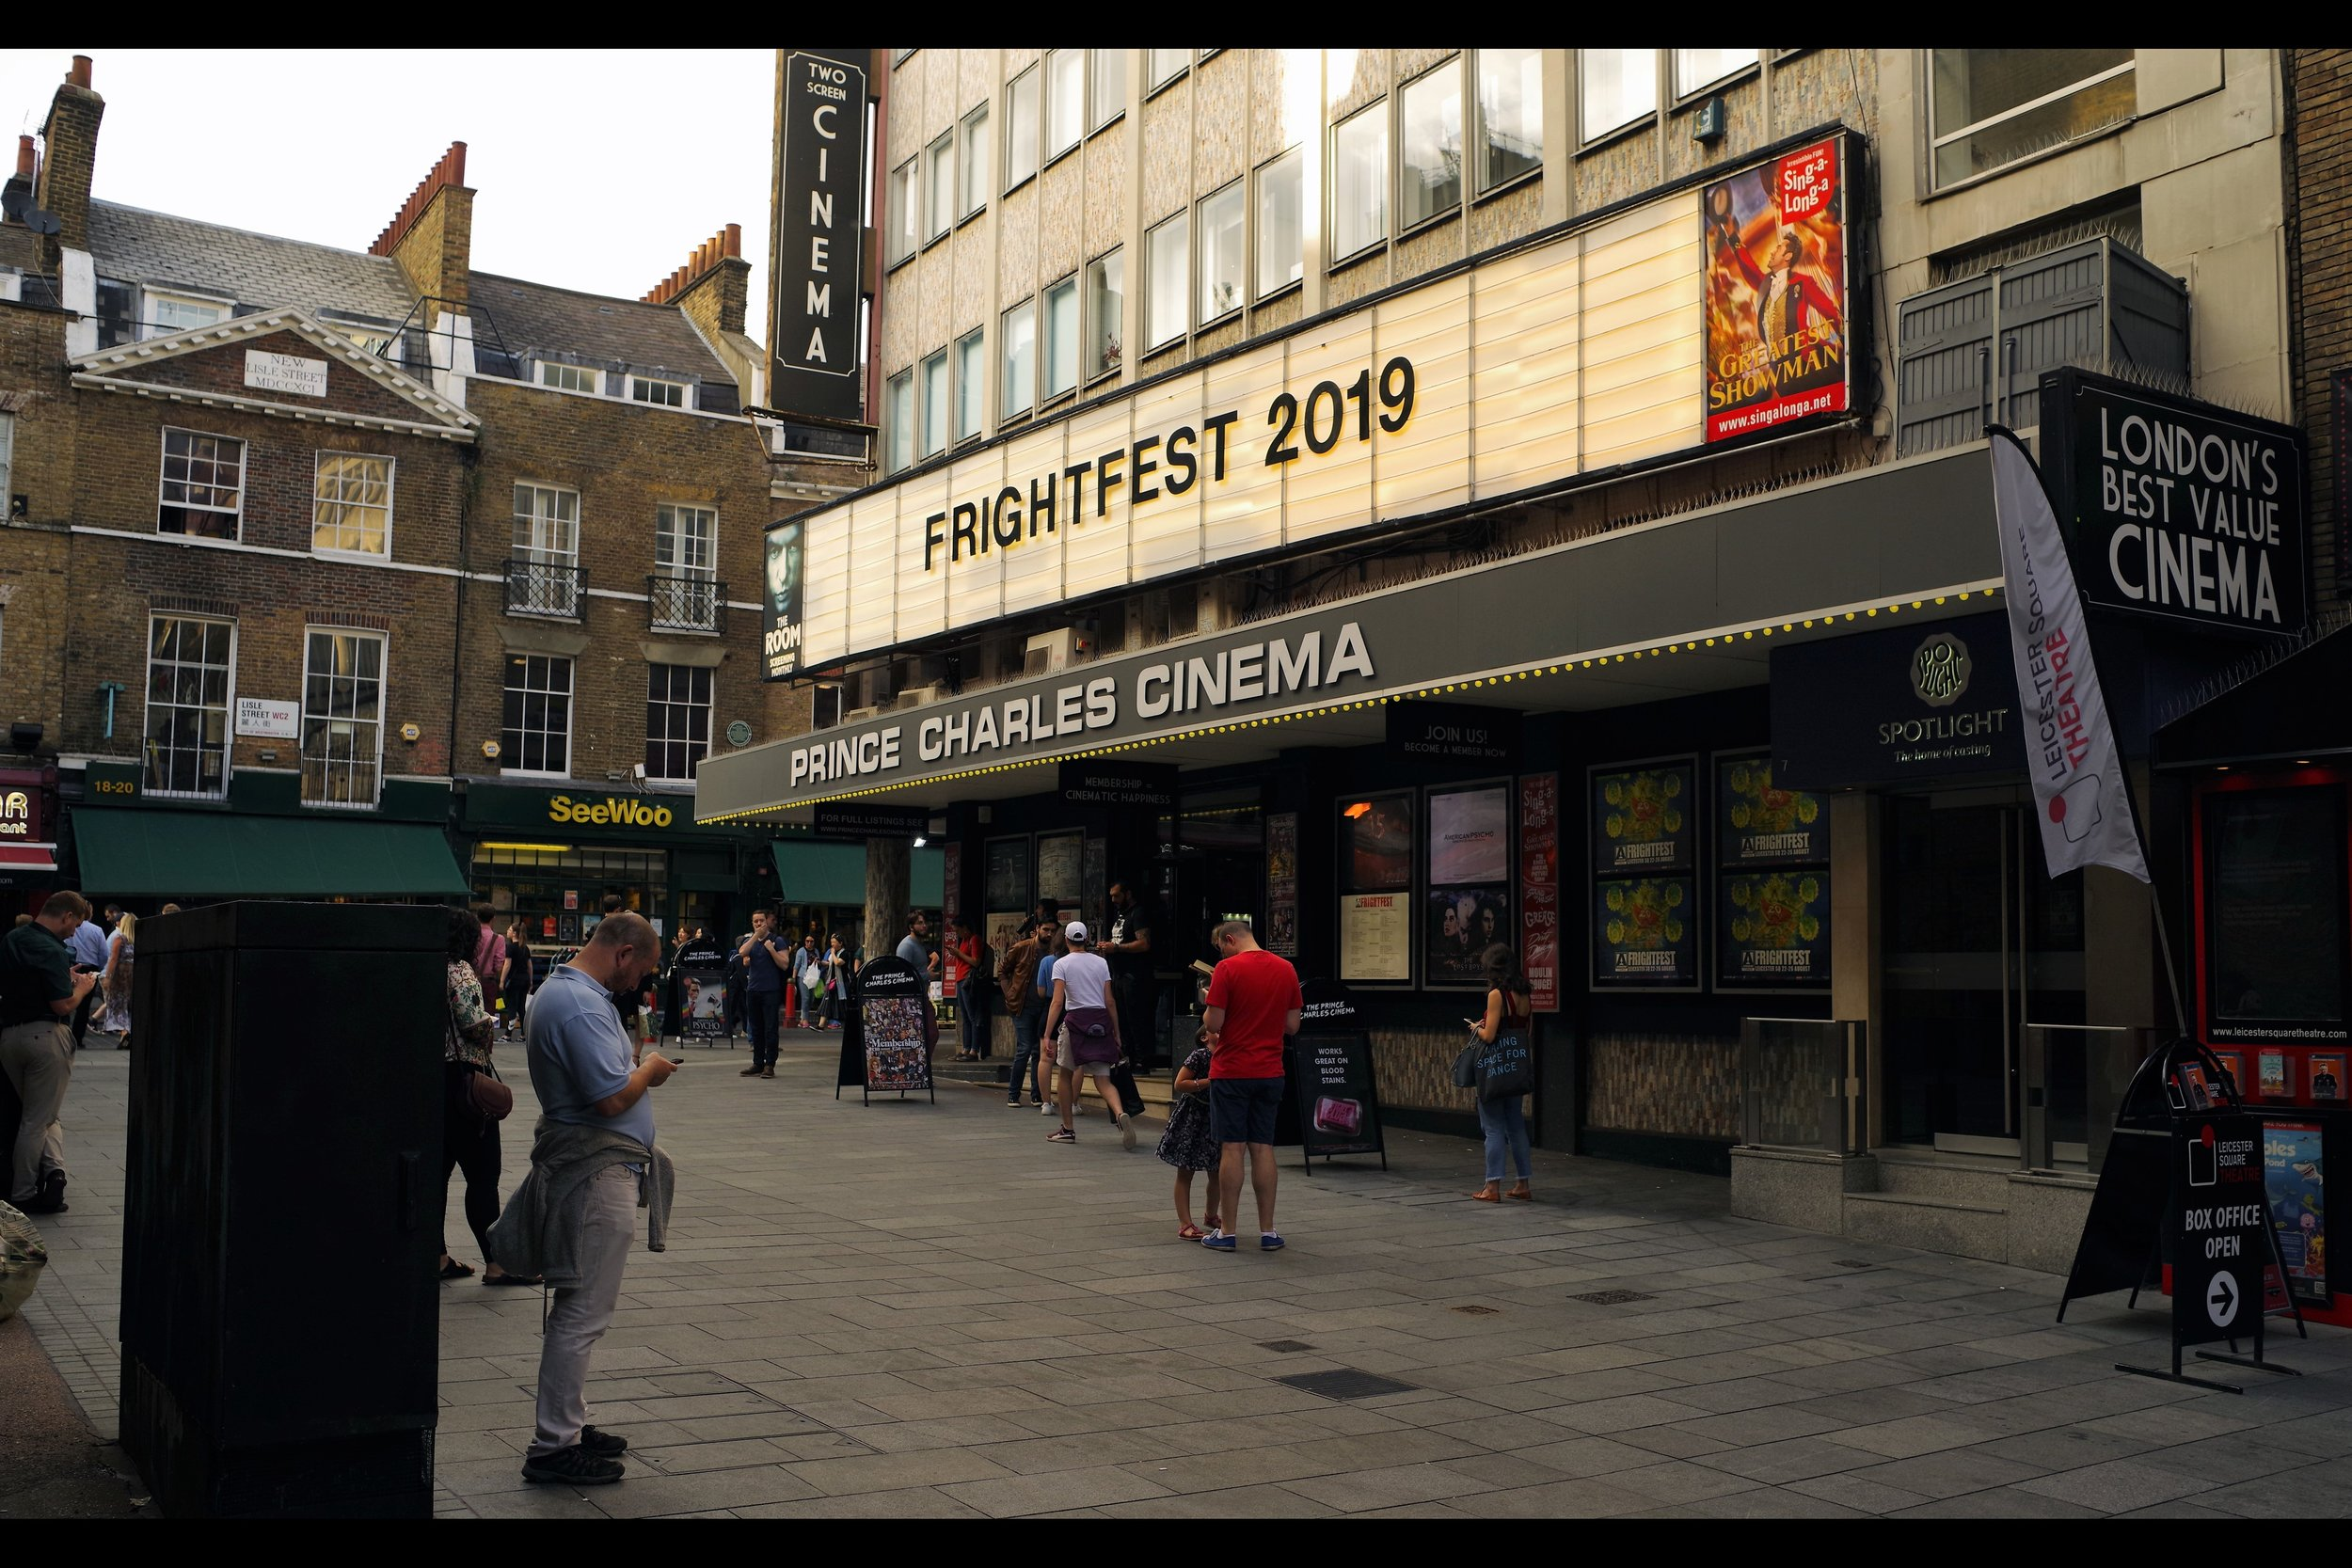 The Prince Charles Cinema is one of two cinemas hosting Frightfest - I'll be seeing 'The Dark Light' there on Sunday, but for today (and most of the premieres) it's…..